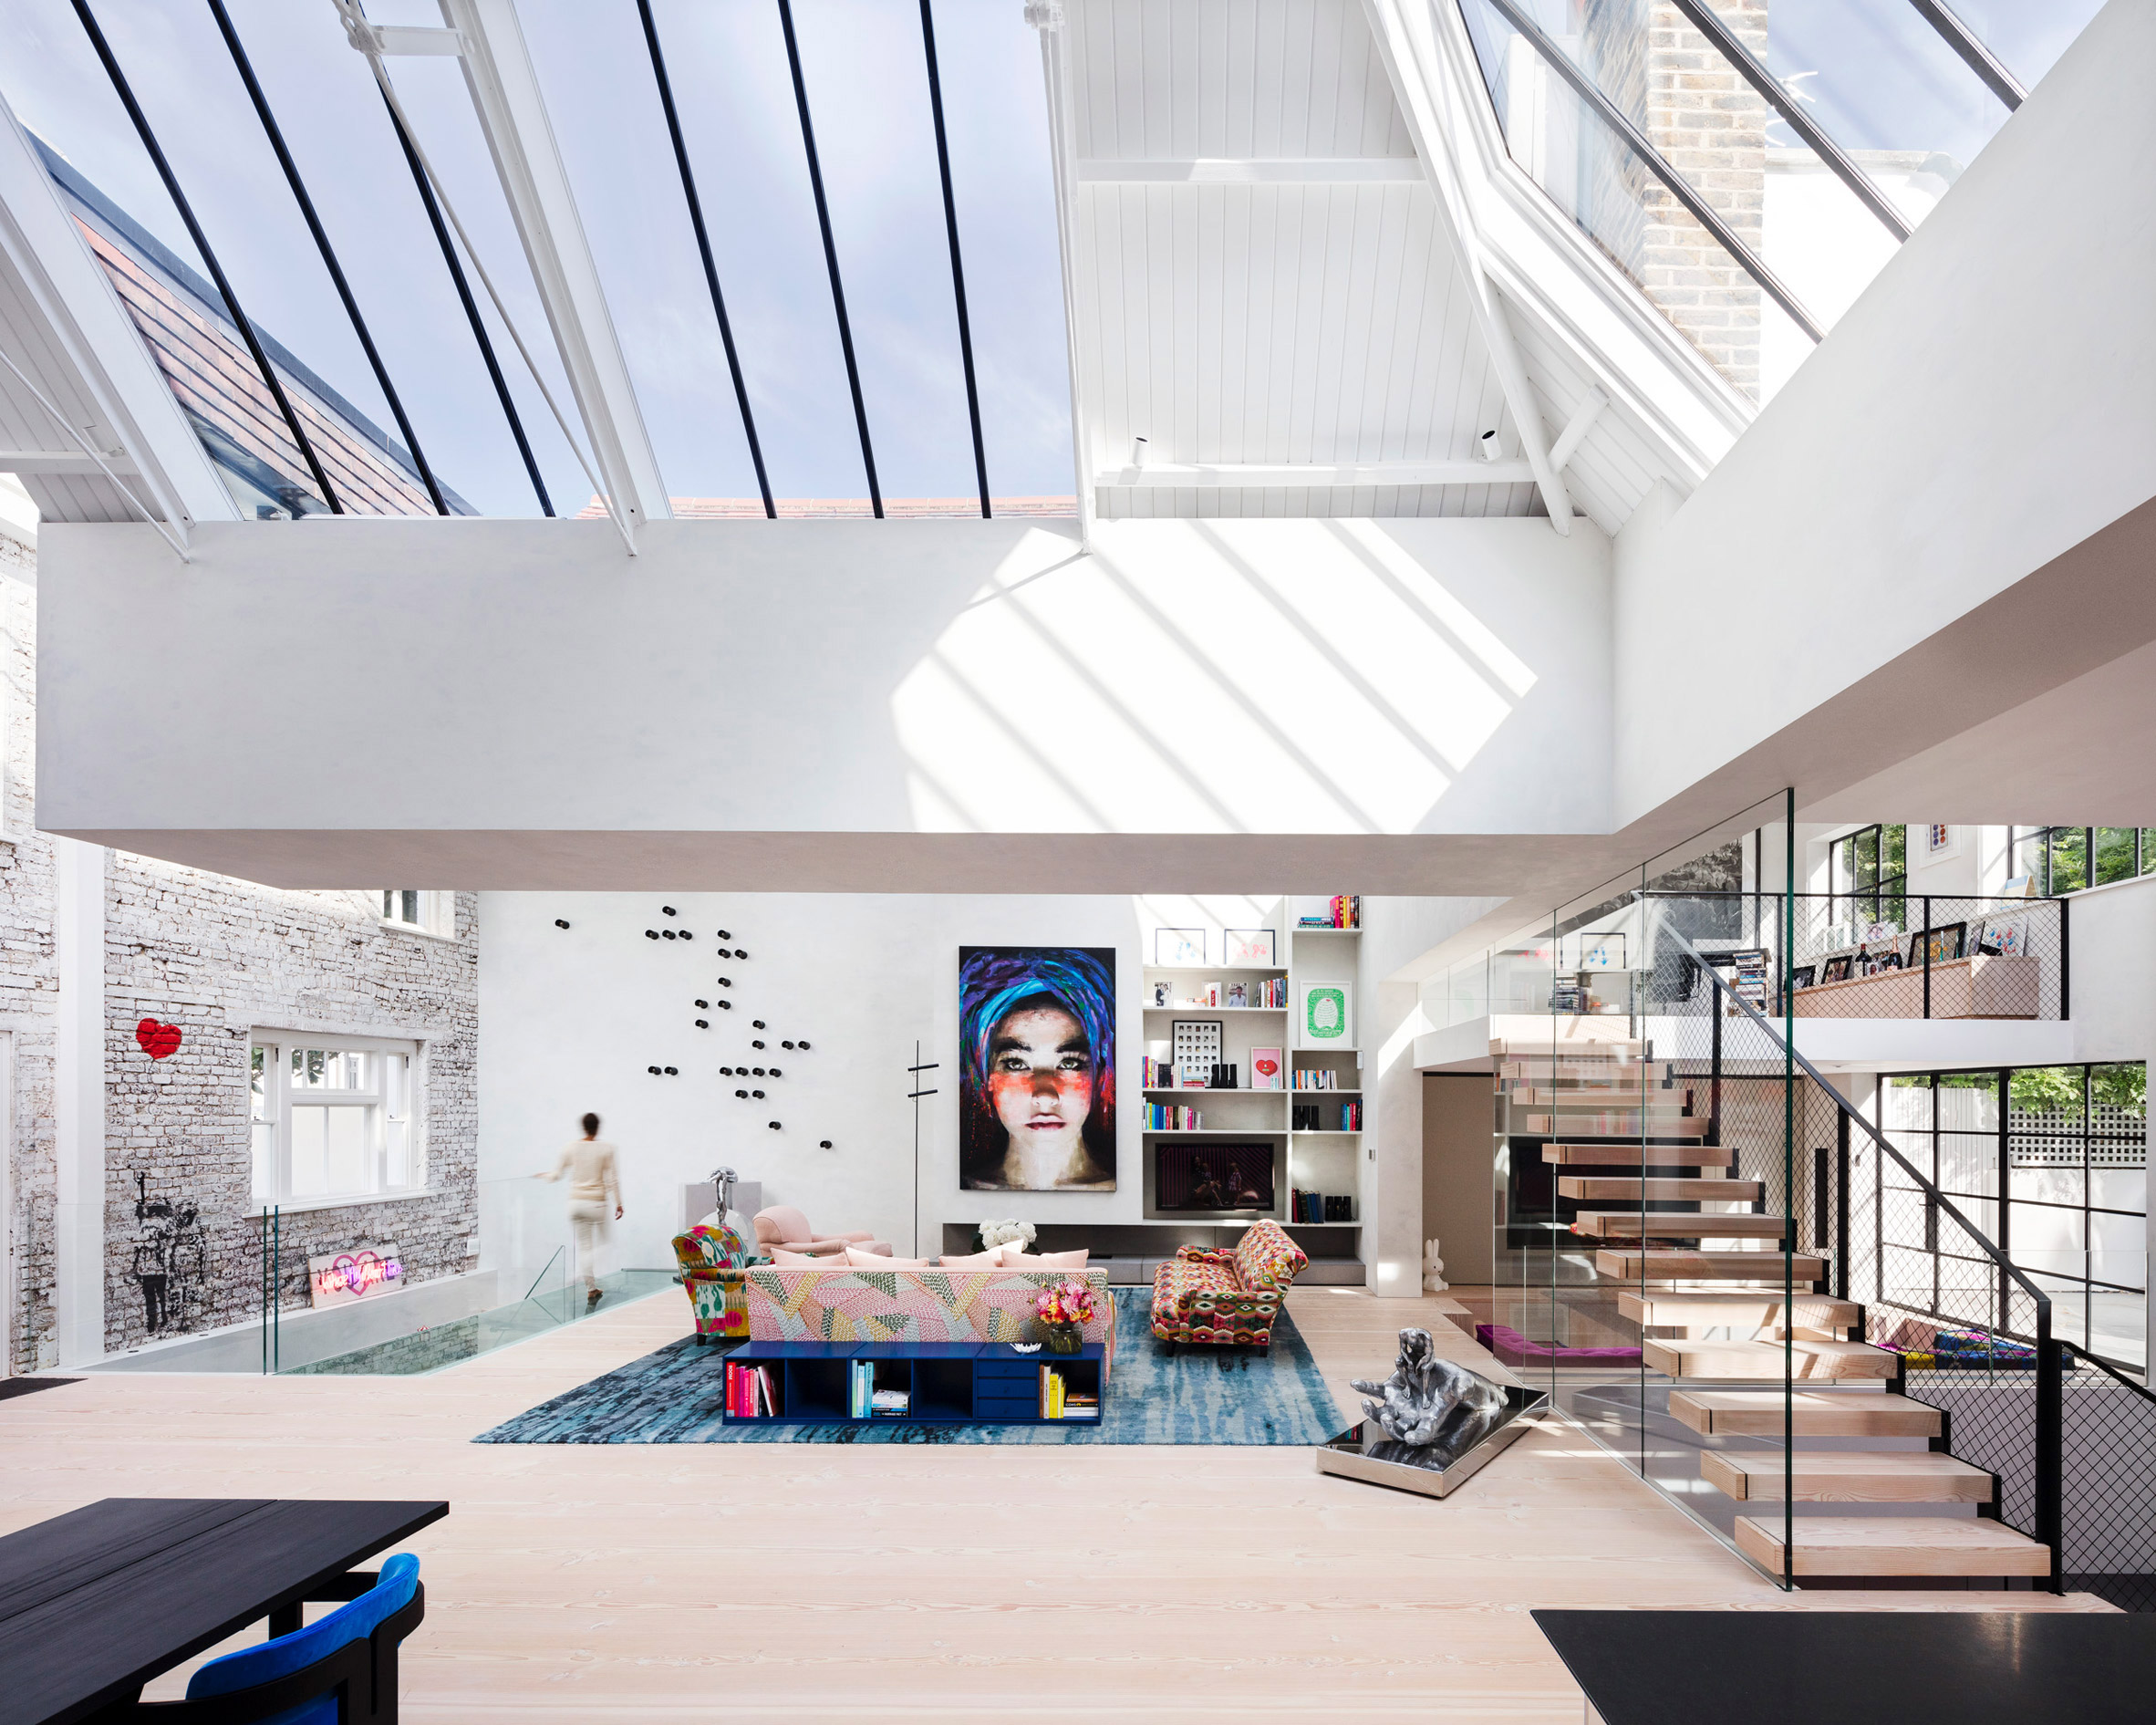 White loft space with skylights